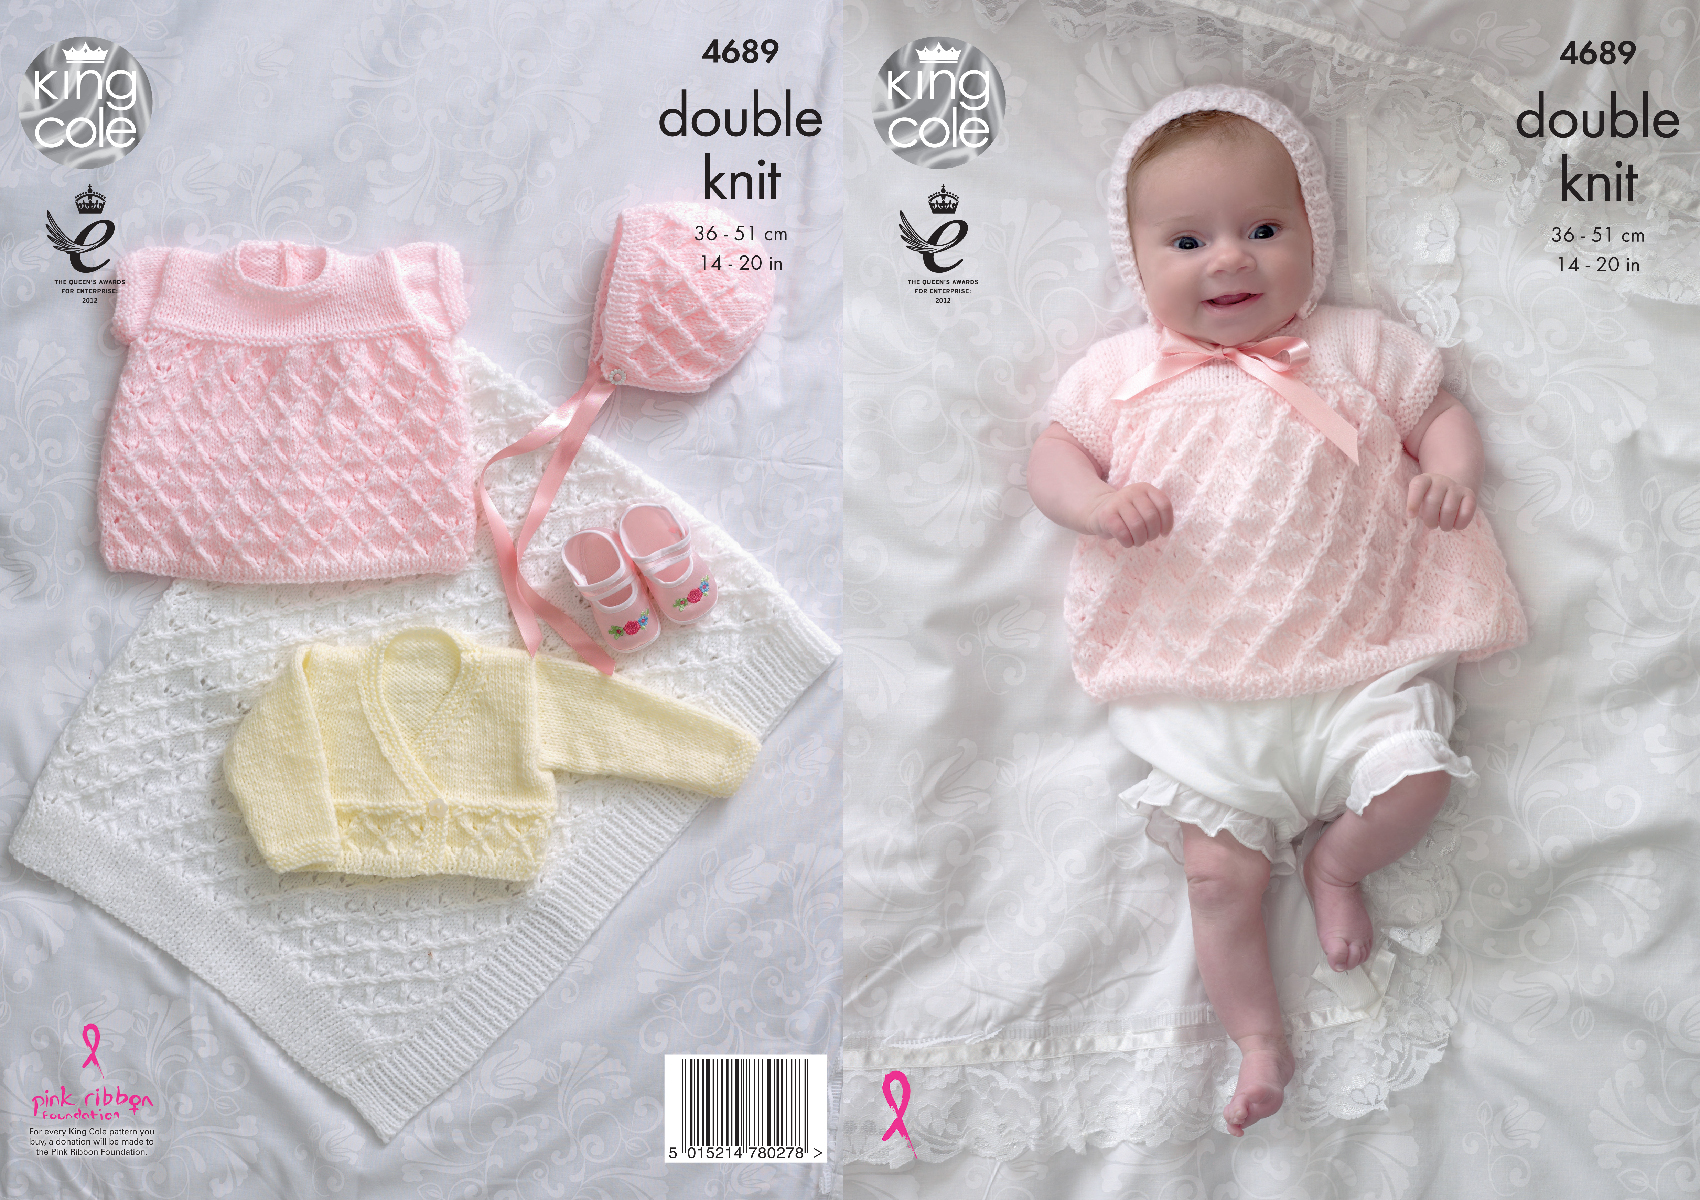 King cole baby double knitting pattern angel top cardigan bonnet please look at images below for the chart showing measurements yarn and materials requirement to make this garment bankloansurffo Choice Image